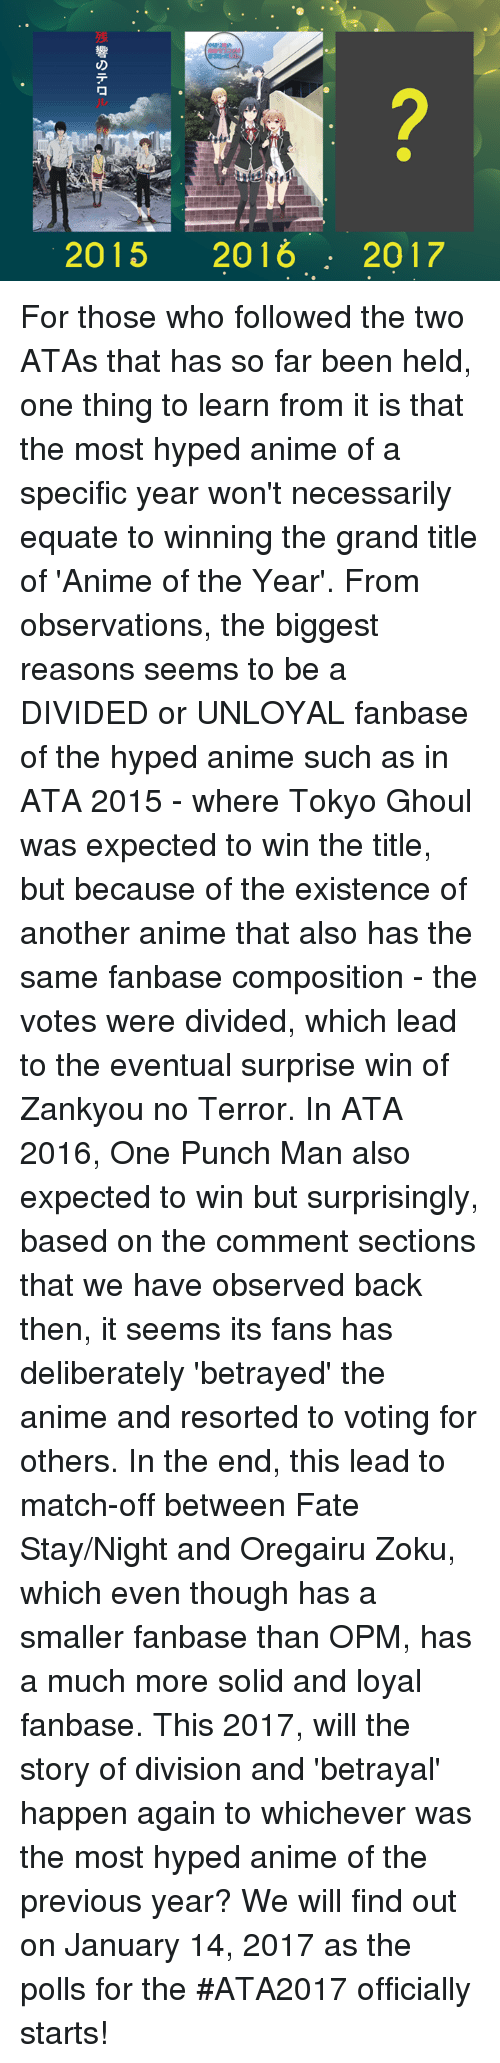 fate stay: 2015 2016 2017 For those who followed the two ATAs that has so far been held, one thing to learn from it is that the most hyped anime of a specific year won't necessarily equate to winning the grand title of 'Anime of the Year'.    From observations, the biggest reasons seems to be a DIVIDED or UNLOYAL fanbase of the hyped anime such as in ATA 2015 - where Tokyo Ghoul was expected to win the title, but because of the existence of another anime that also has the same fanbase composition - the votes were divided, which lead to the eventual surprise win of Zankyou no Terror. In ATA 2016, One Punch Man also expected to win but surprisingly, based on the comment sections that we have observed back then, it seems its fans has deliberately 'betrayed' the anime and resorted to voting for others. In the end, this lead to match-off between Fate Stay/Night and Oregairu Zoku, which even though has a smaller fanbase than OPM, has a much more solid and loyal fanbase.  This 2017, will the story of division and 'betrayal' happen again to whichever was the most hyped anime of the previous year?   We will find out on January 14, 2017 as the polls for the #ATA2017 officially starts!